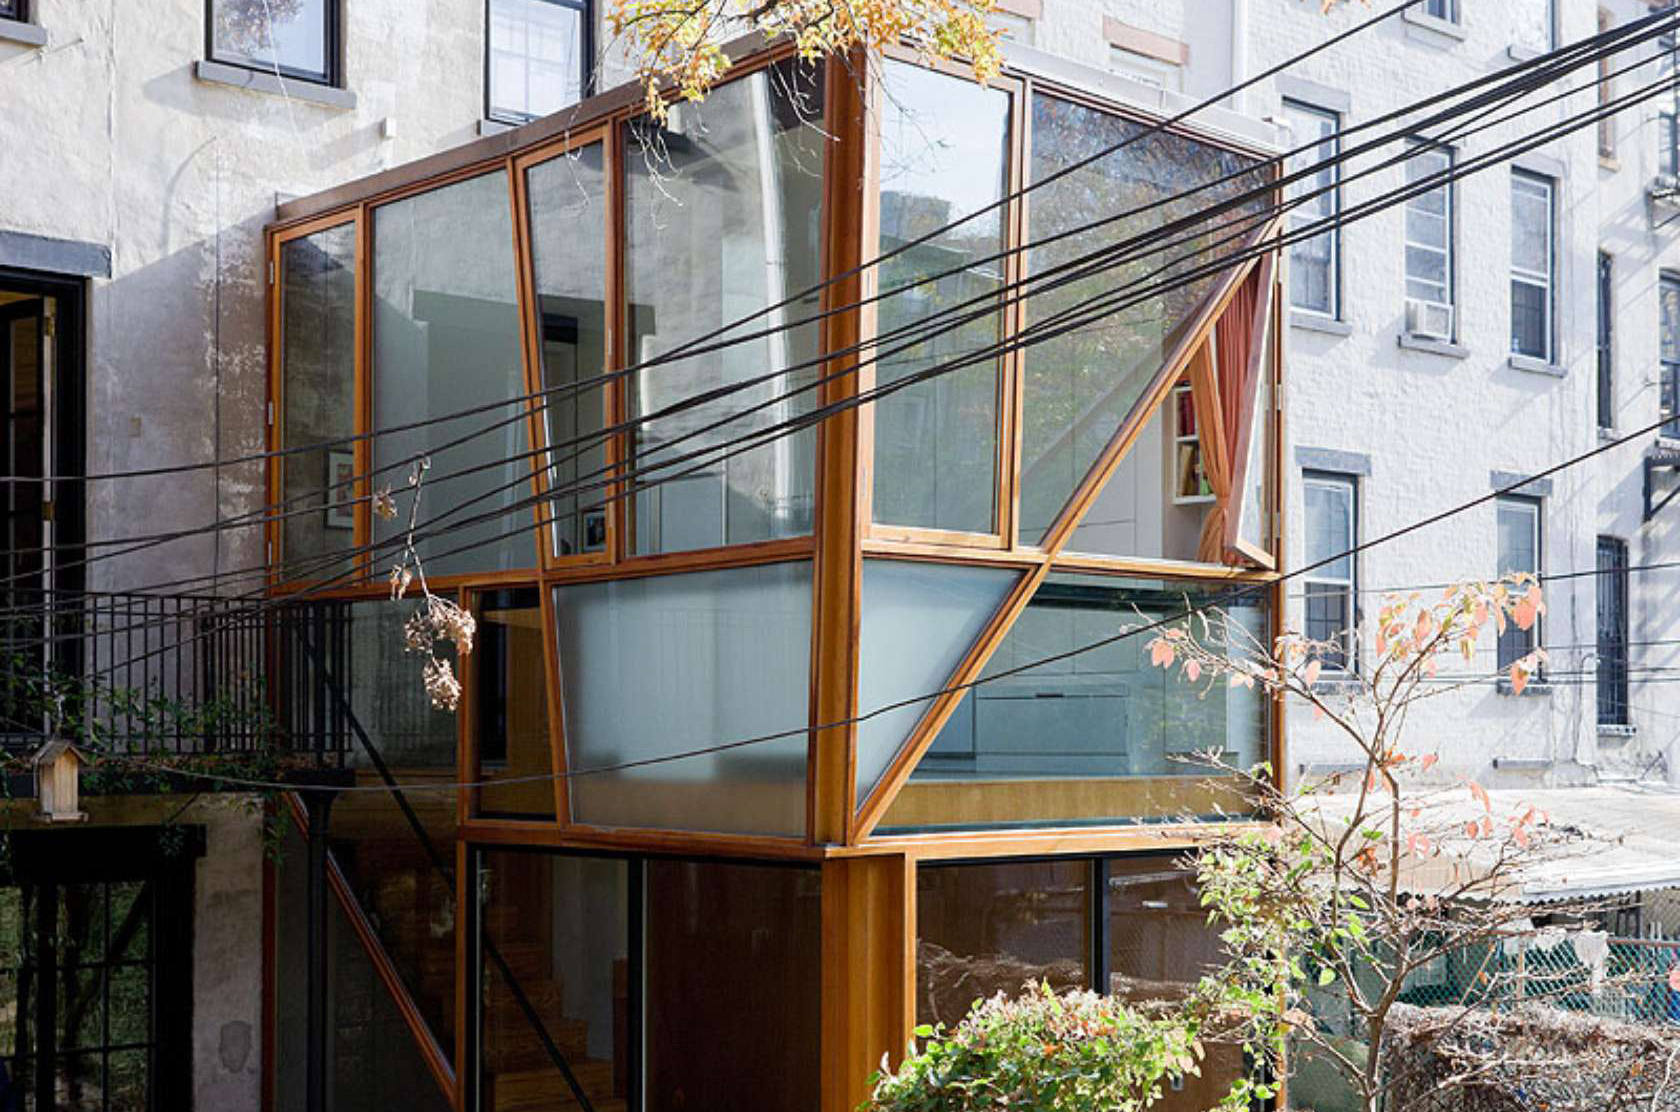 Modern glass addition brings light and nature into a Fort Greene row home